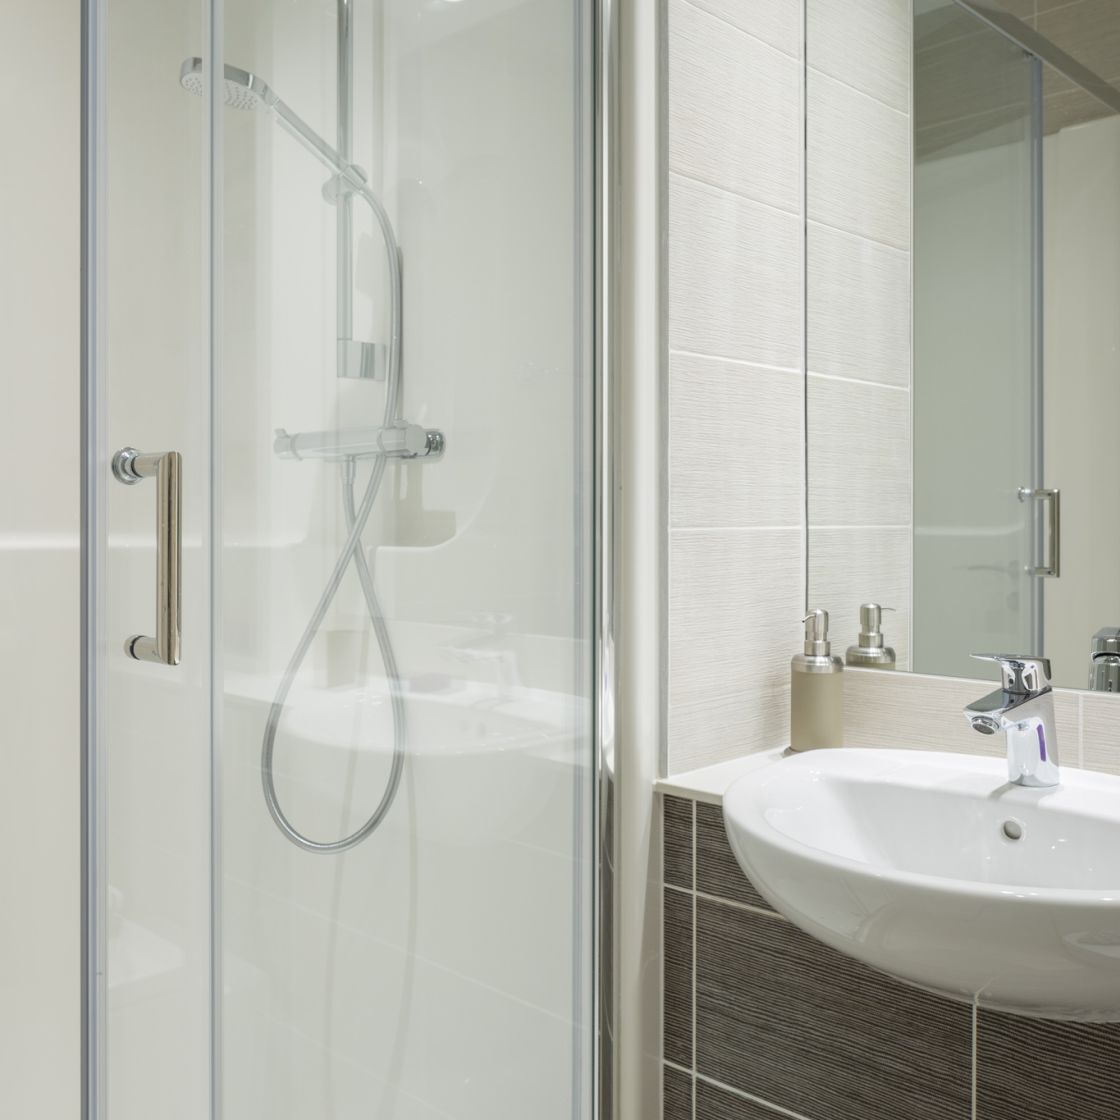 Elegance Student Apartment in Liverpool. En-suite bathroom and walk in shower. IconInc, The Ascent